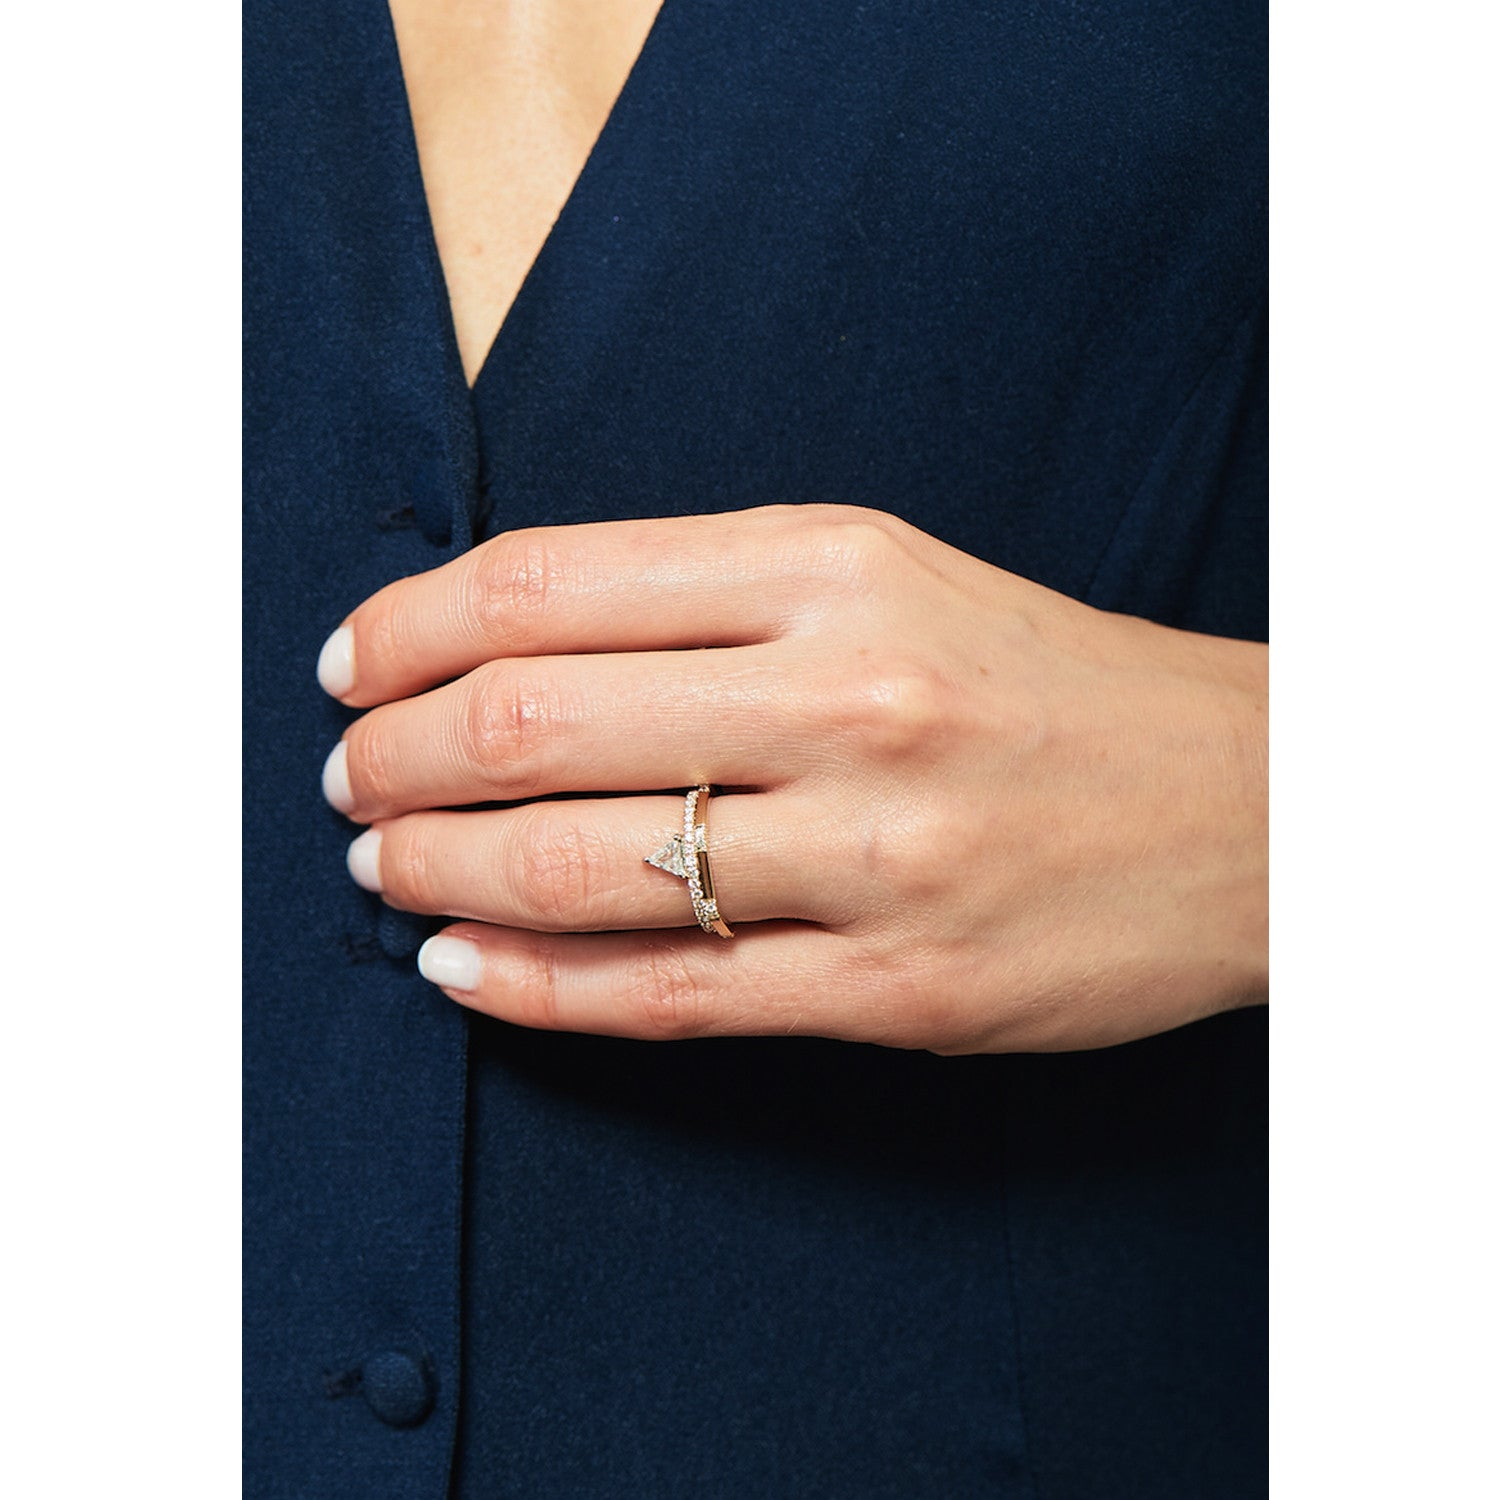 Selin Kent 14K Hex Ring II with White Diamonds - On Model